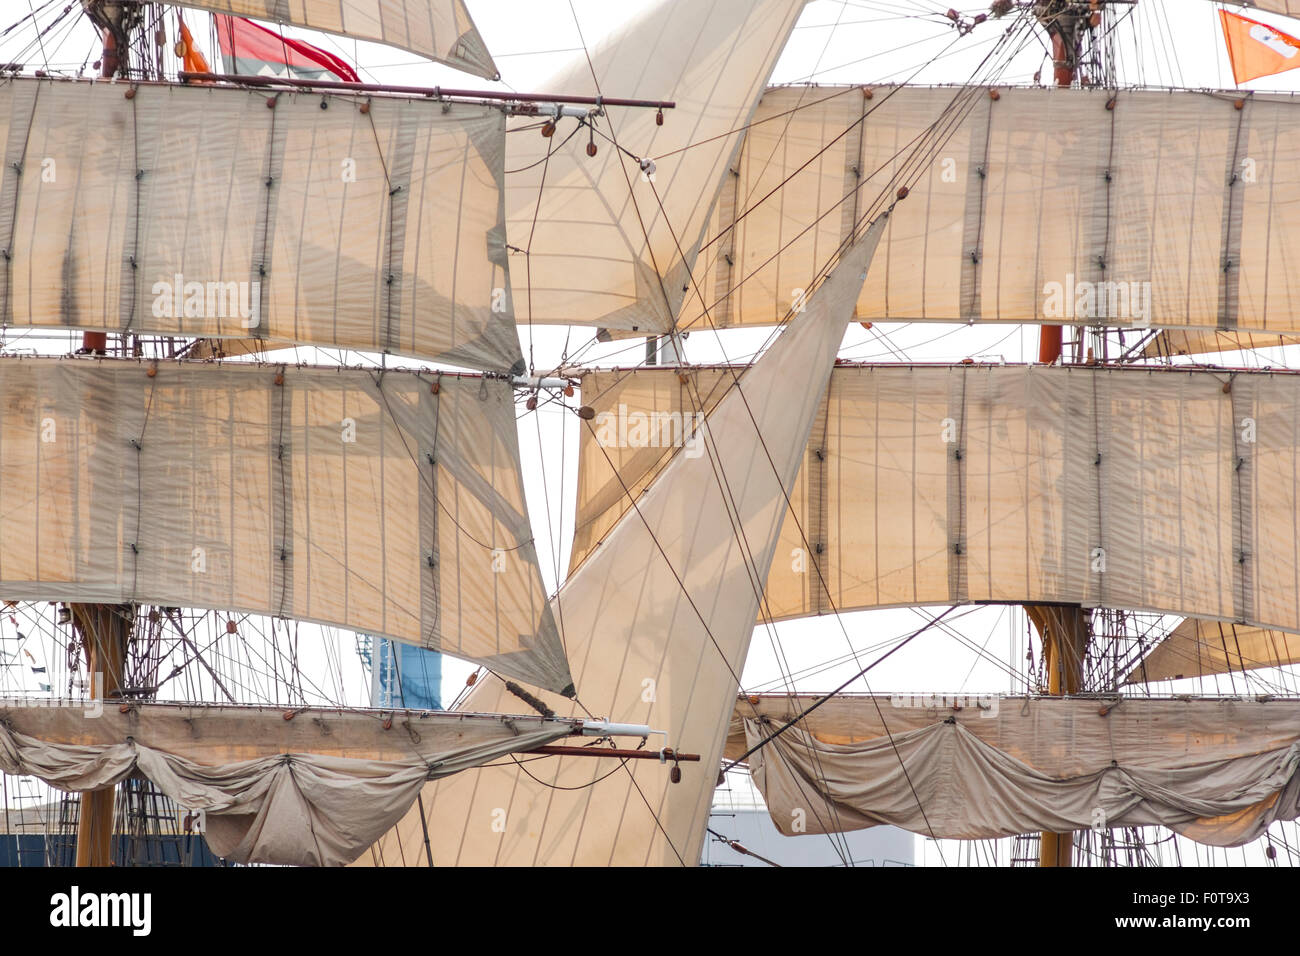 Tall ship Europa Amsterdam Sail 2015 - Stock Image